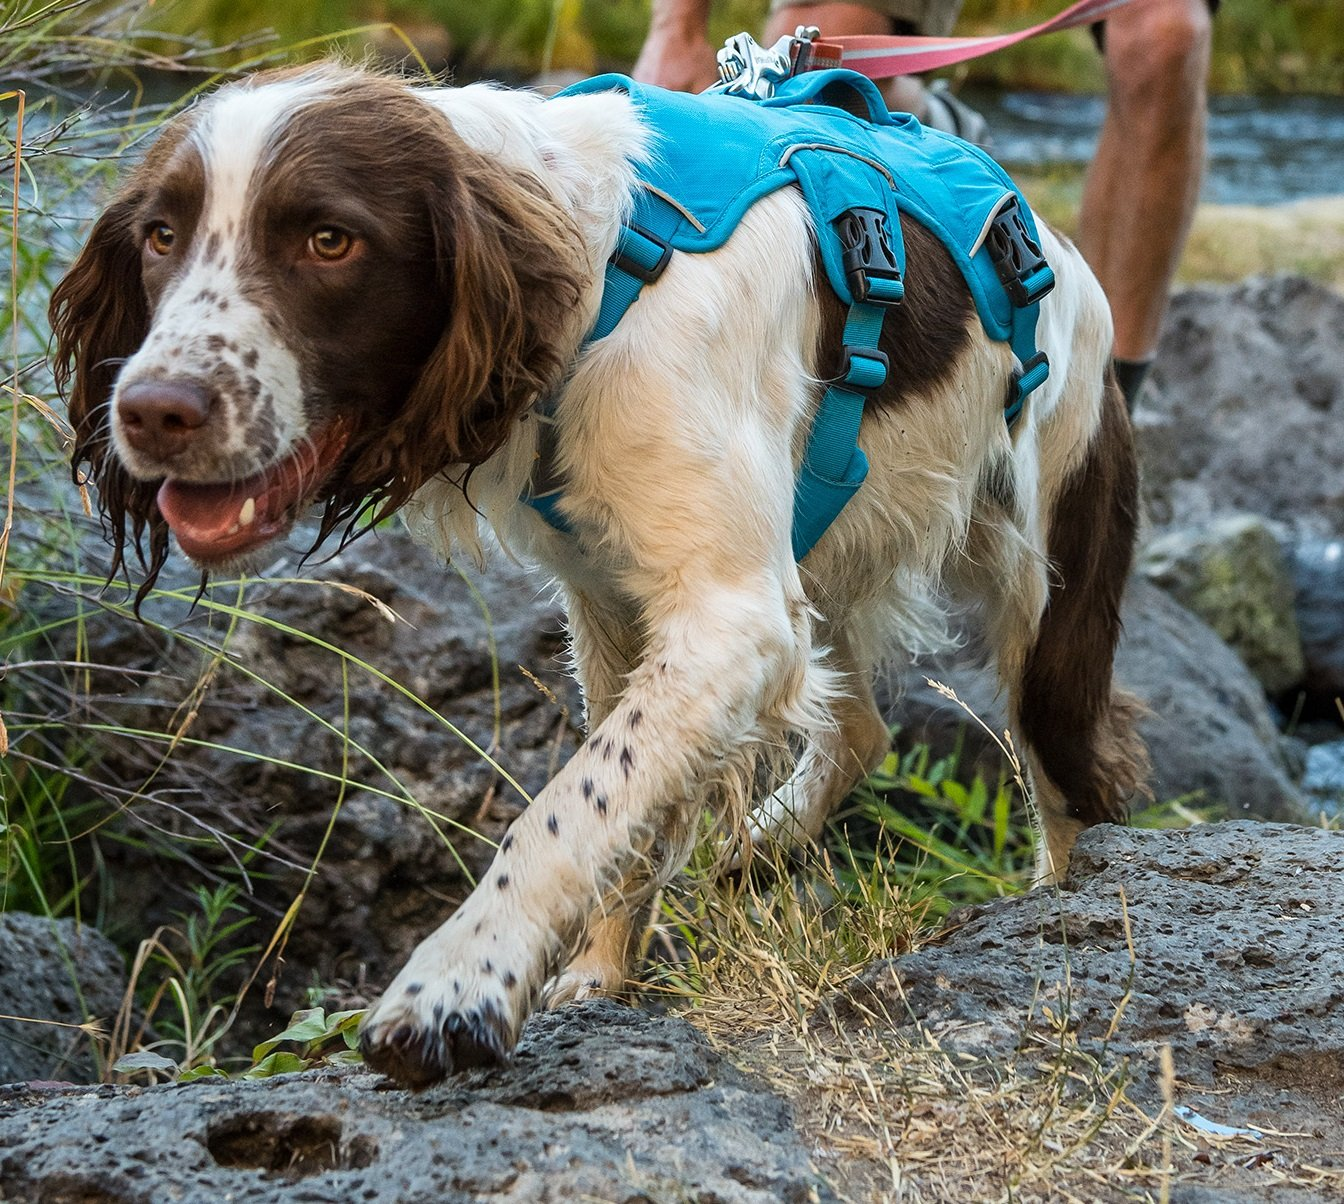 RUFFWEAR NEW 2017 WEB MASTER DOG HARNESS ♦ SECURE REFLECTIVE SUPPORTIVE MULTI USE ♦ ALL SIZES and COLORS (Large / XL, Blue Dusk)